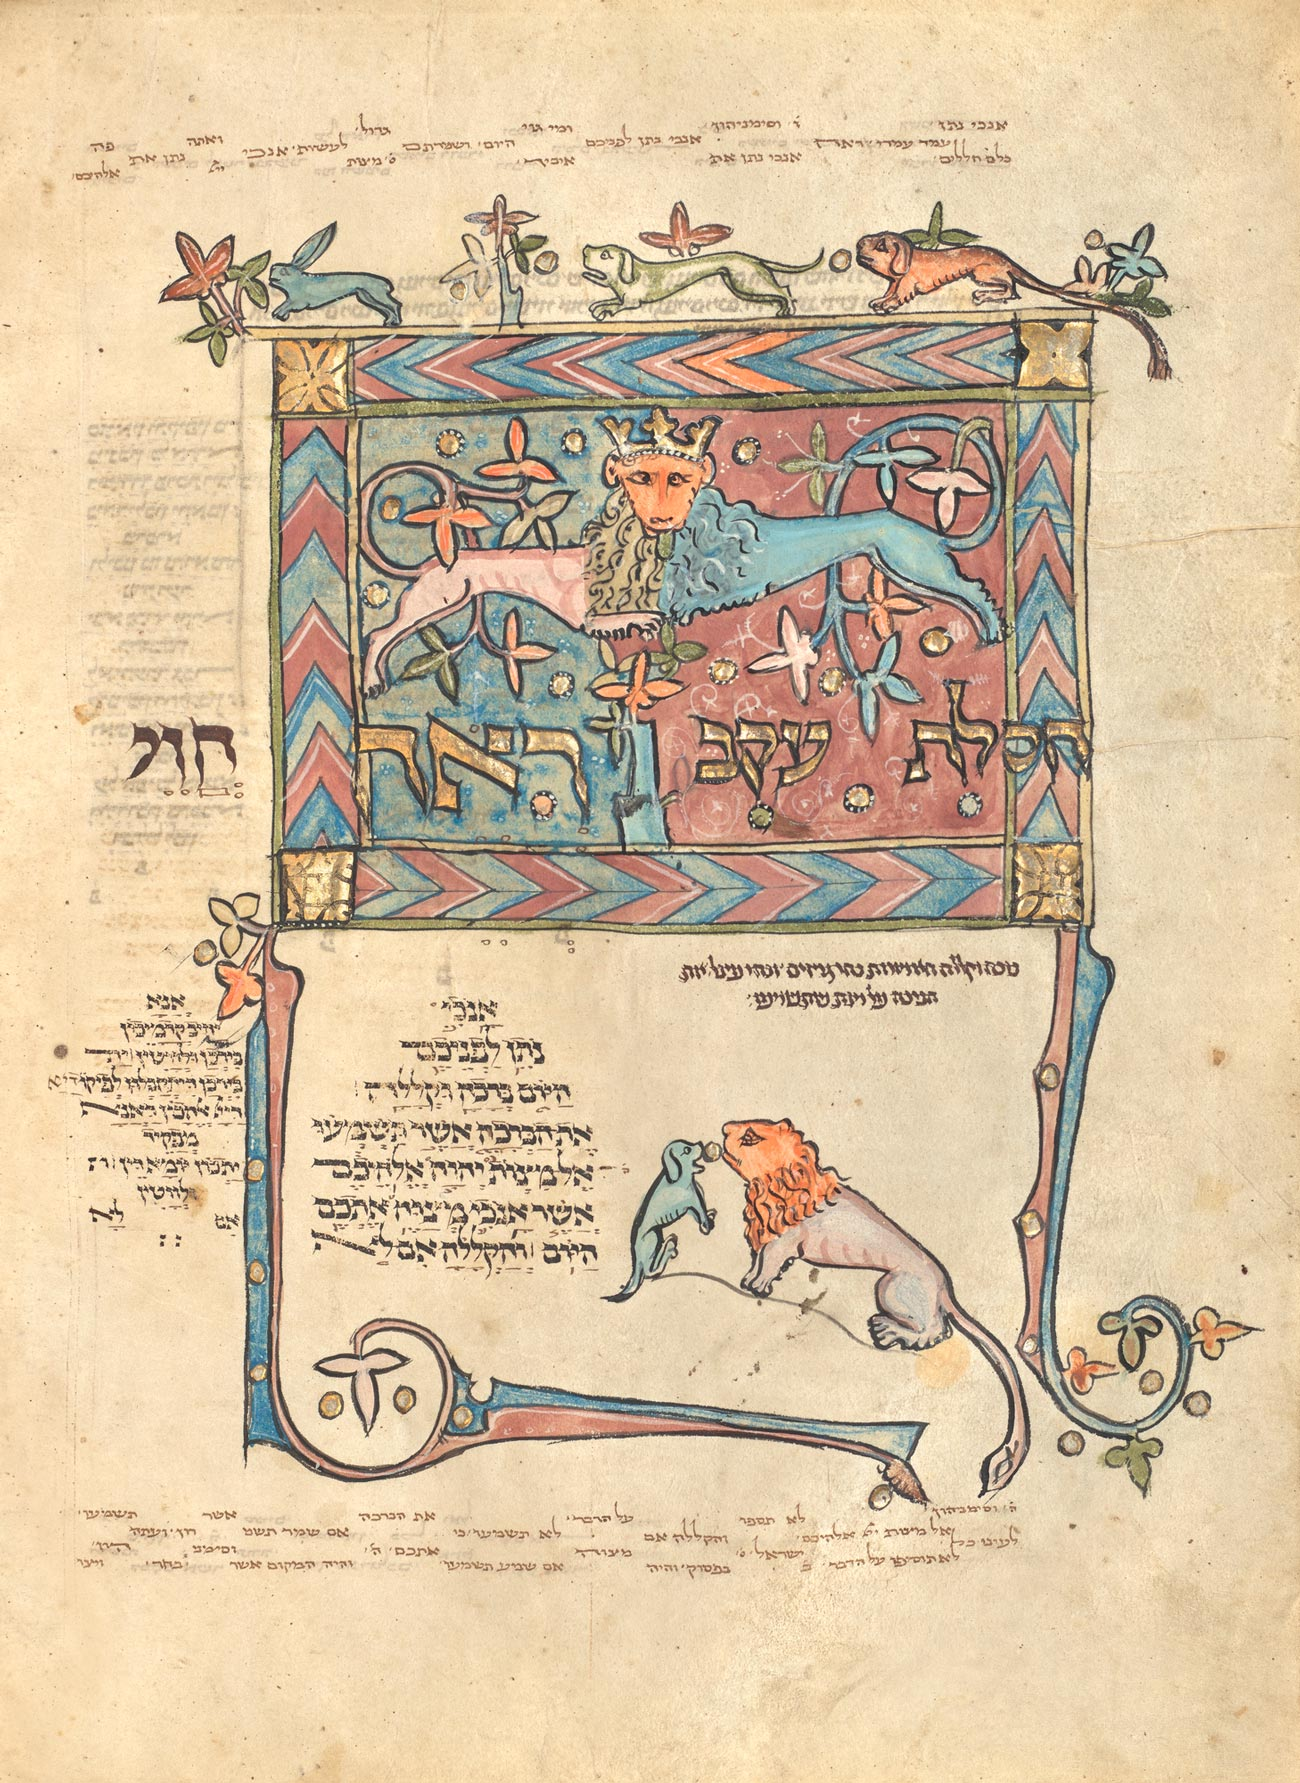 Hebrew letters in varying sizes appear with tiny notes above and below. A banner appears crest-like with figure of two lions that merge with one crowned head. Dogs appear to chase a rabbit across the top while a dog shares a gold ball with a lion below.